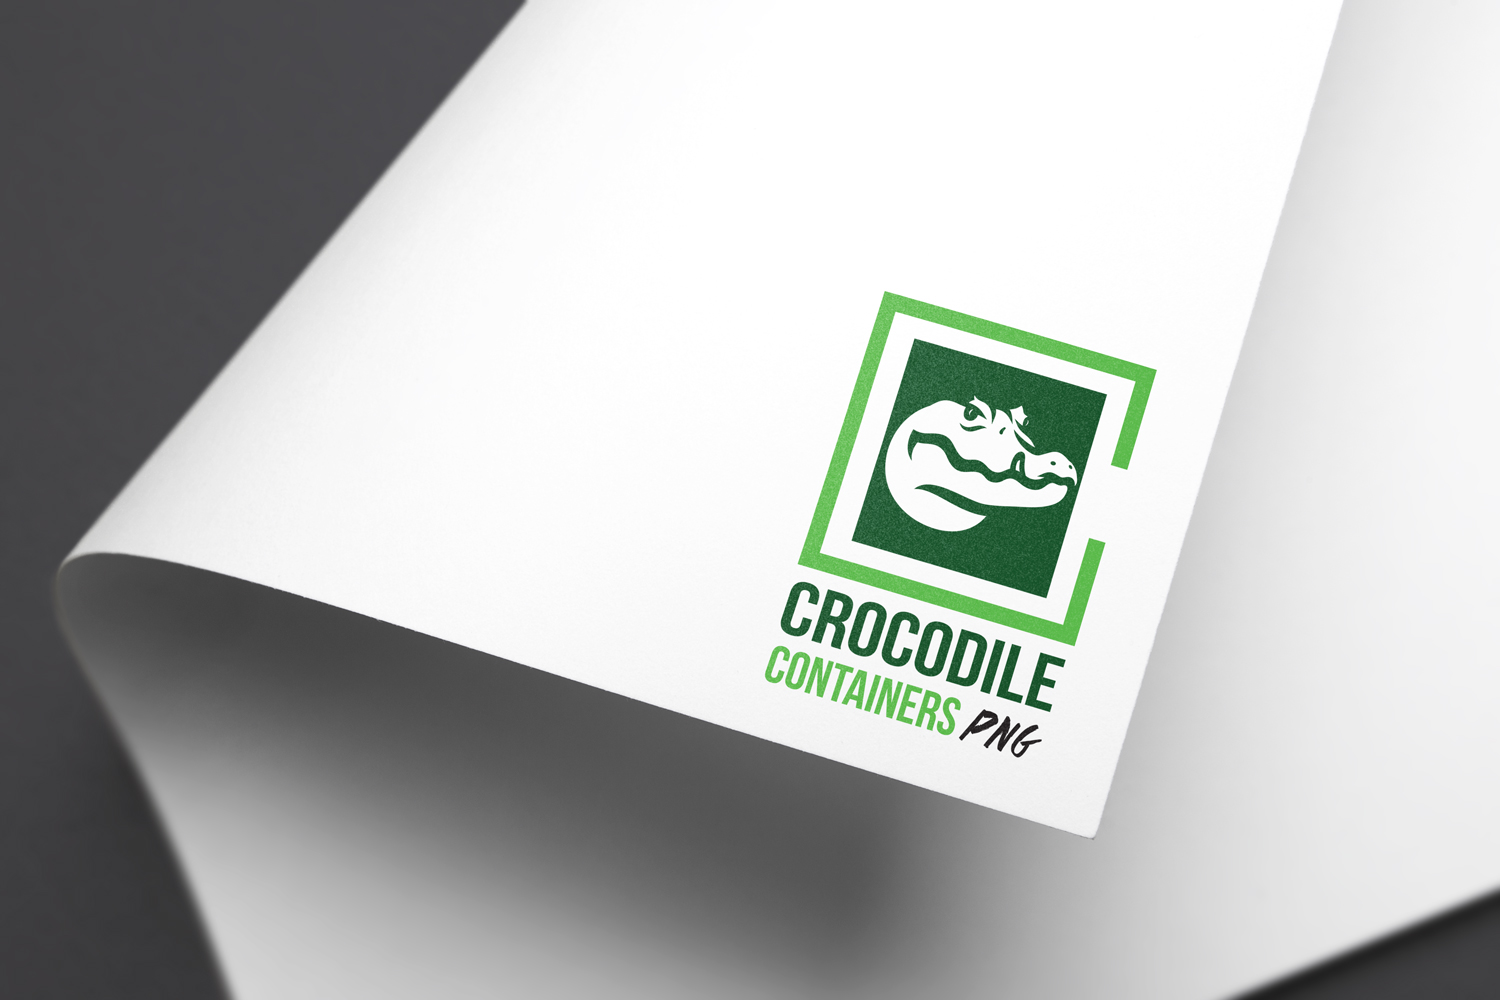 Crocodile Containers